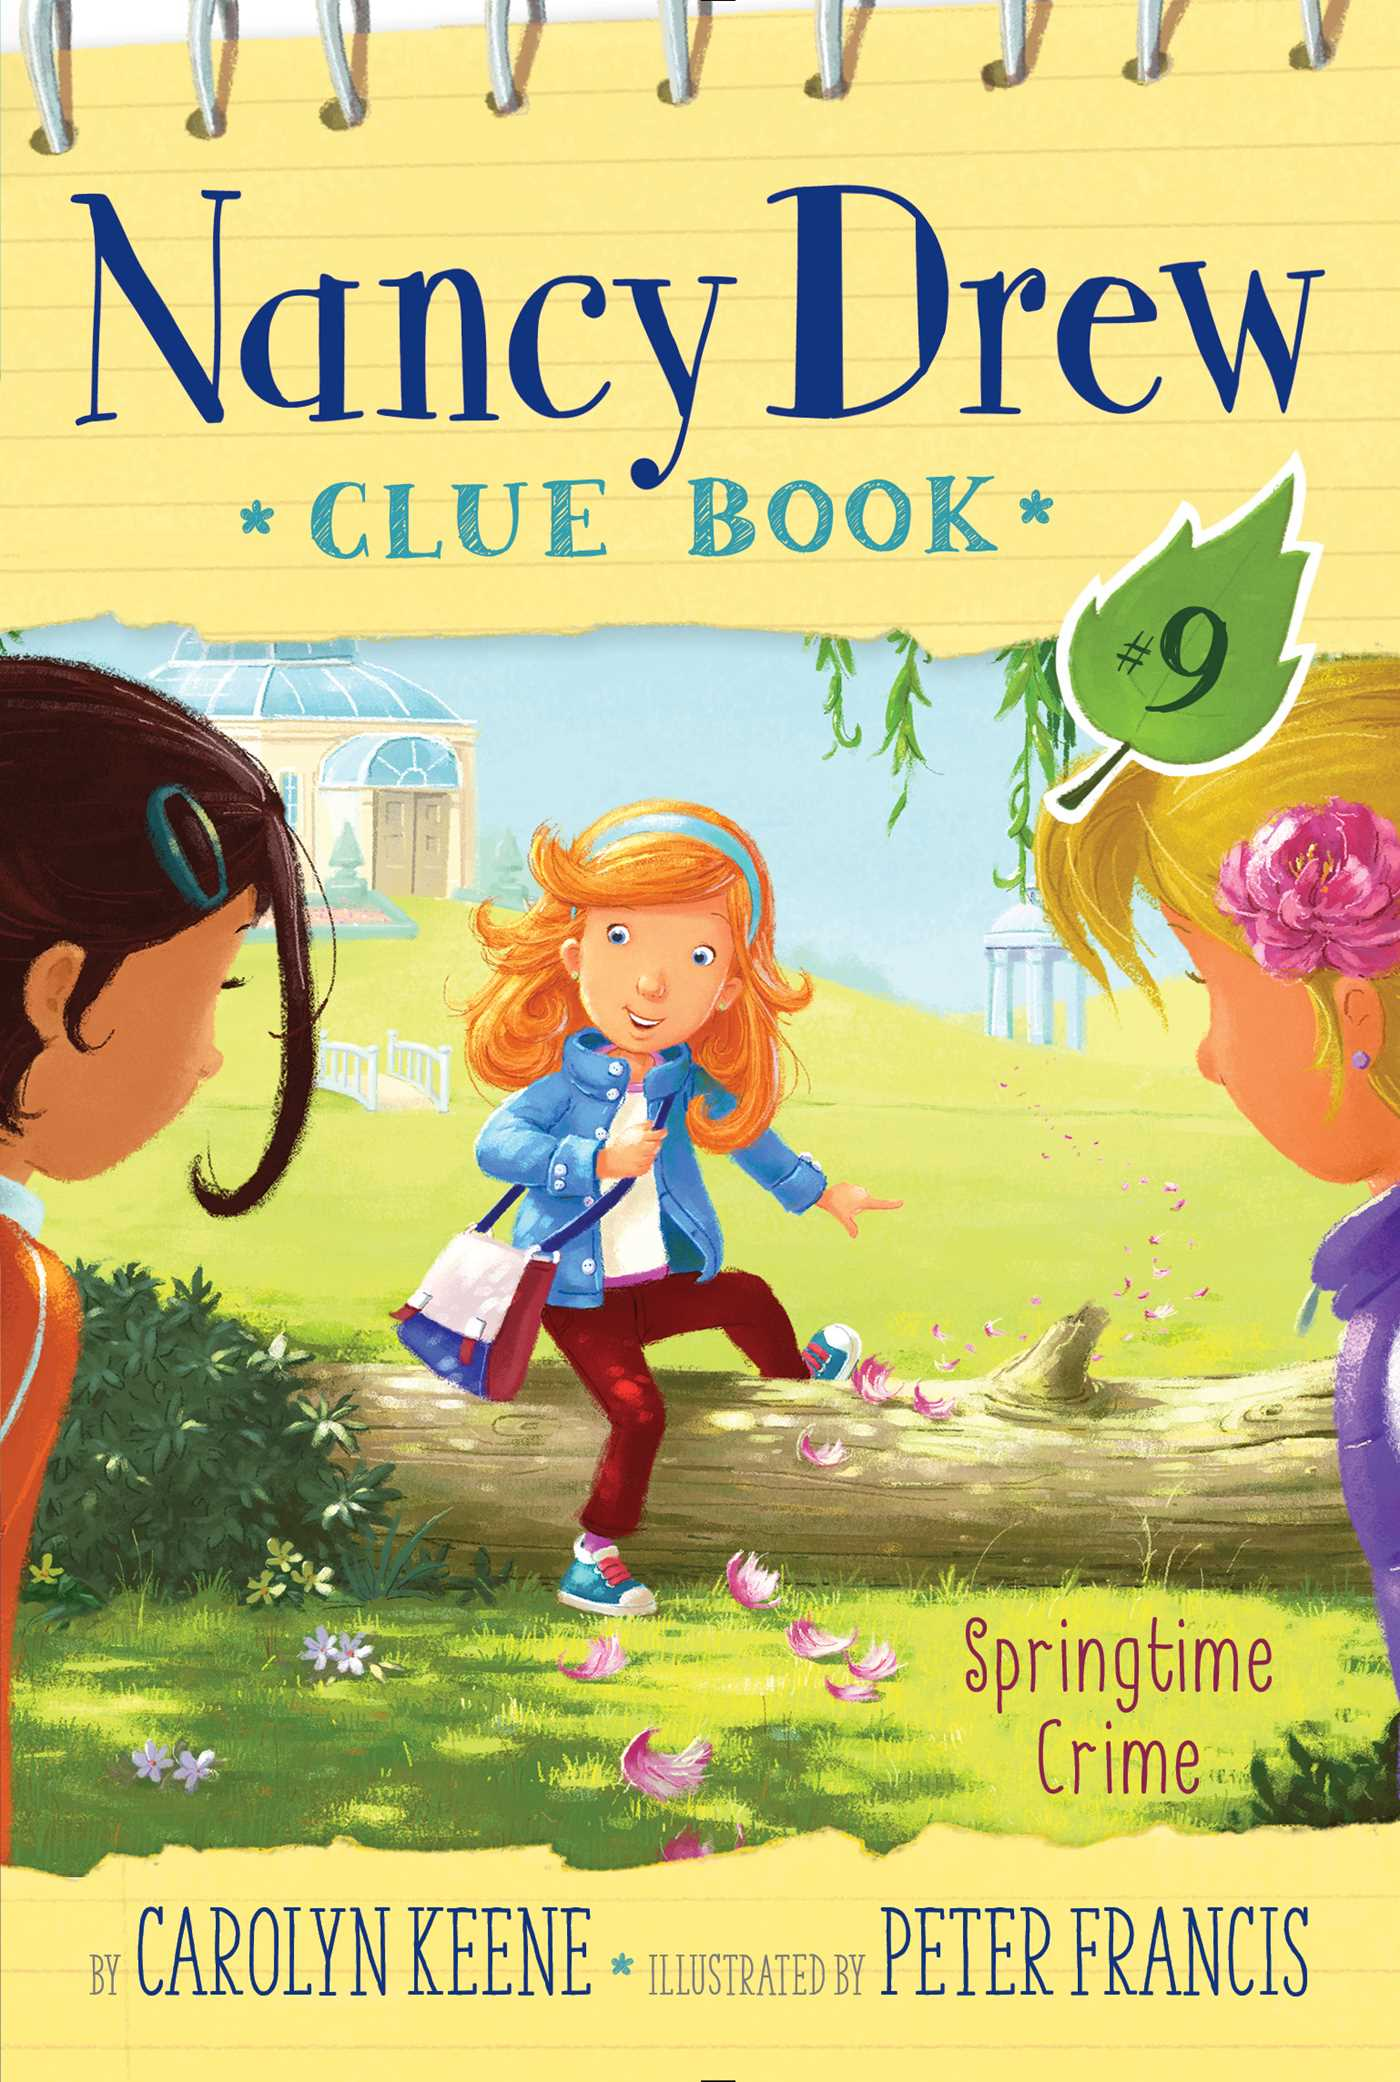 Nancy Drew Clue Book #9 Springtime Crime – Cover Art and Details